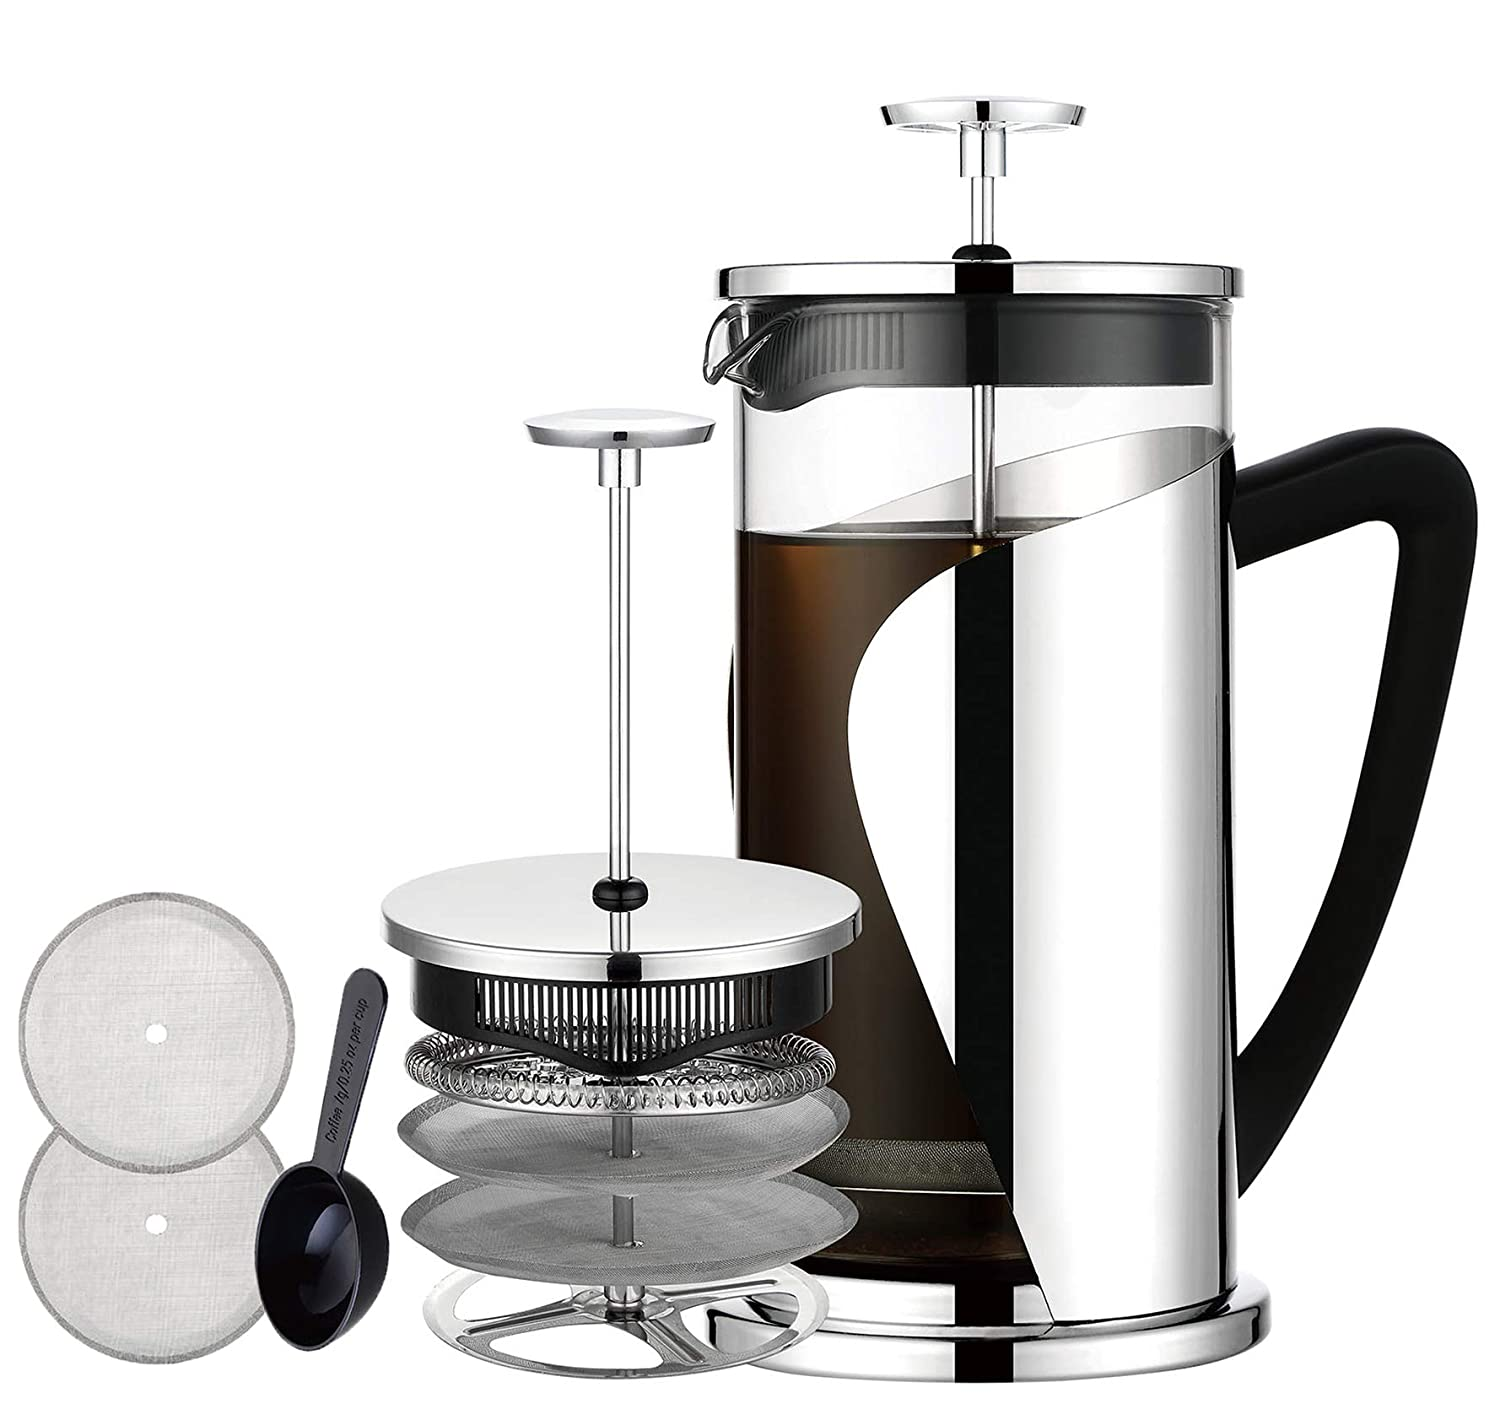 French Coffee Press, Bebeke Glass French Press Coffee Tea Maker 8 cup, 34 oz 304 Stainless Steel Coffee Press Pot with 4 Filter Screens, Dishwasher Safe Easy Clean Heat Resistant Borosilicate Glass